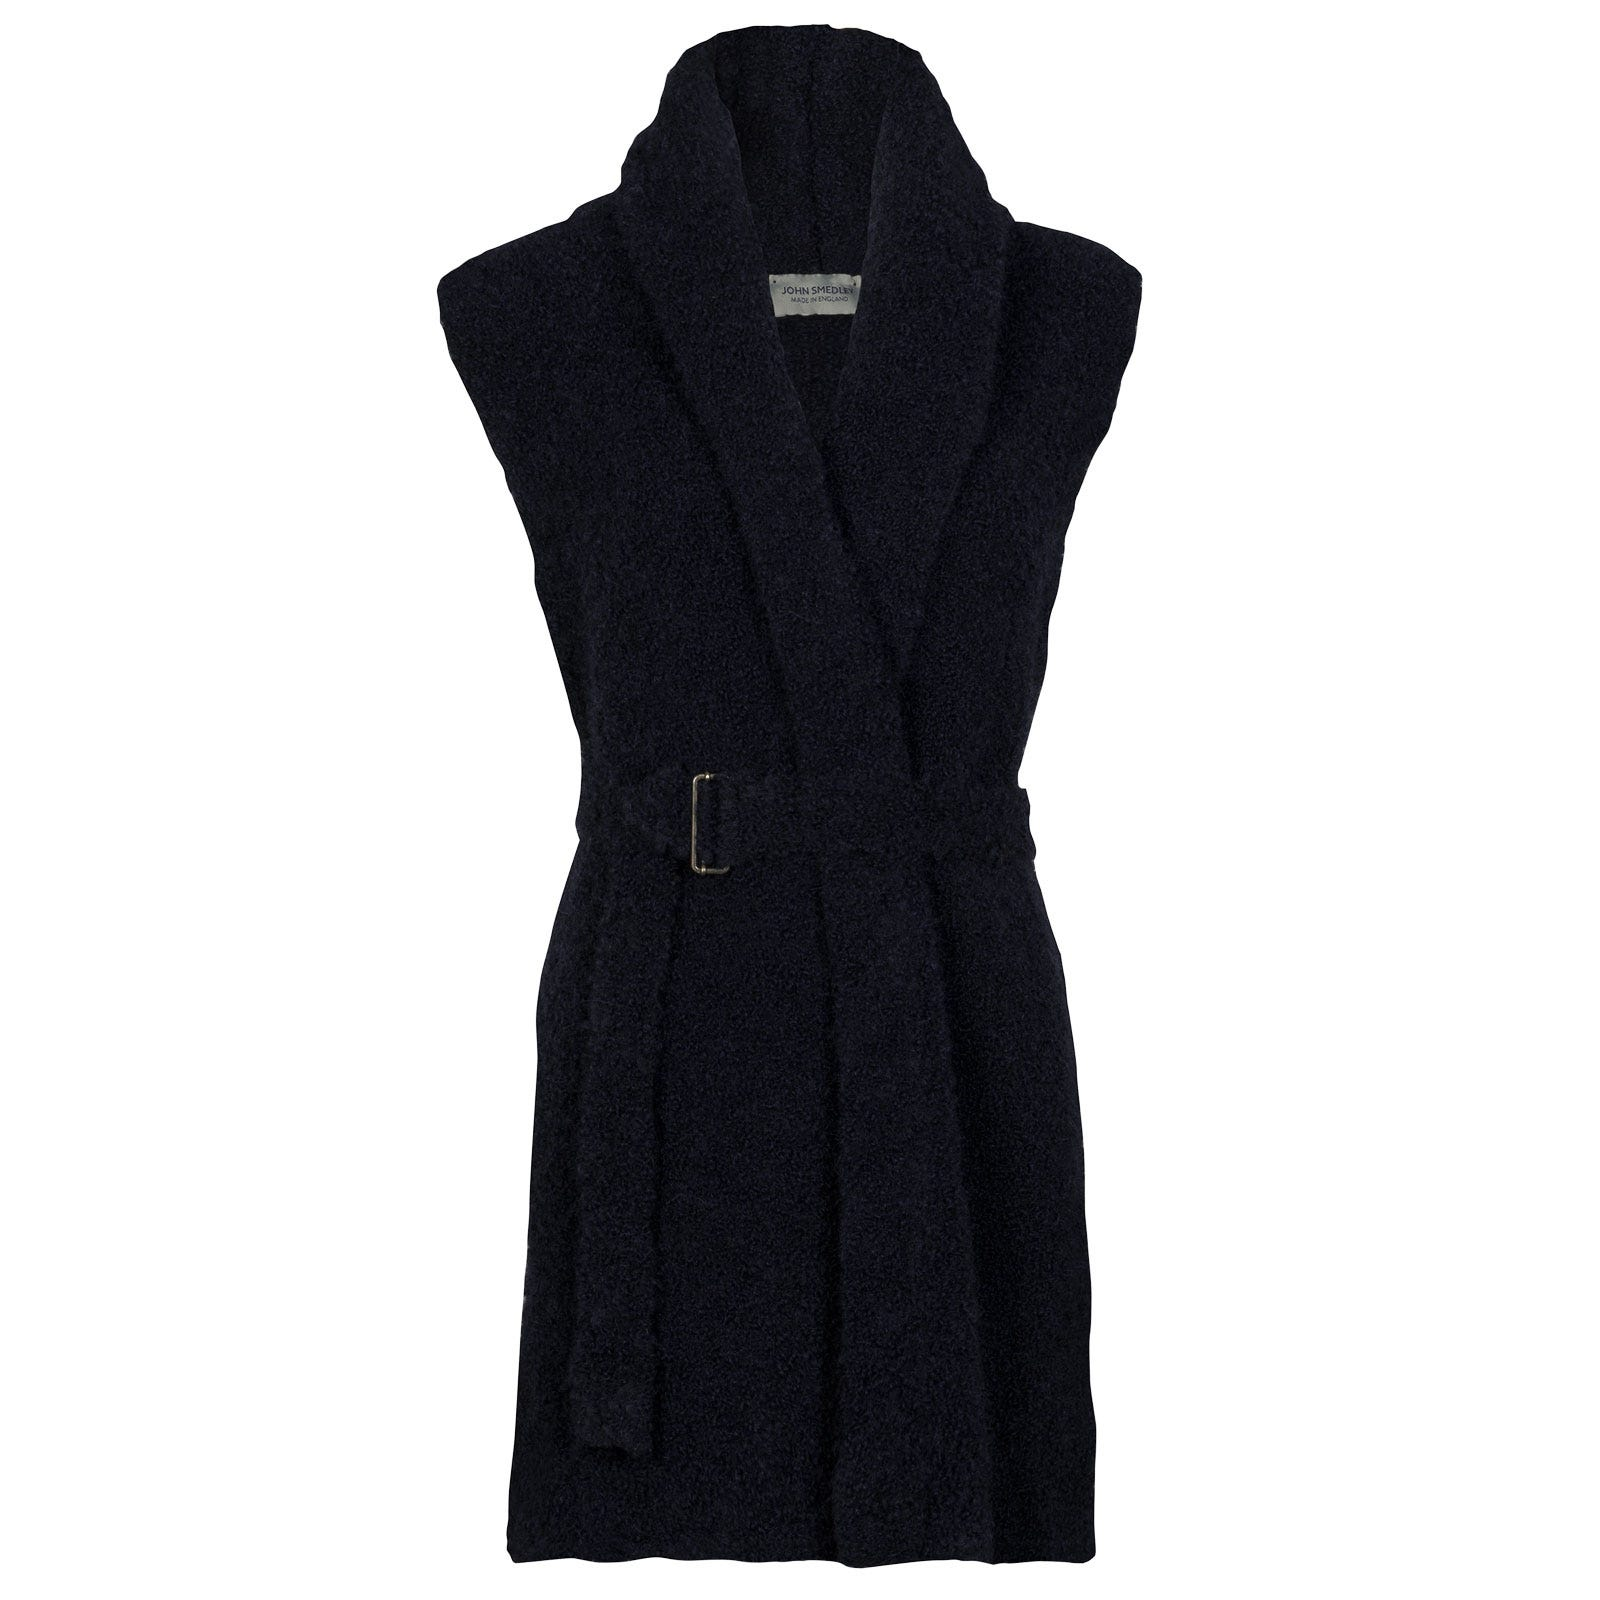 John Smedley Lomond Alpaca & Wool Jacket in Midnight-L